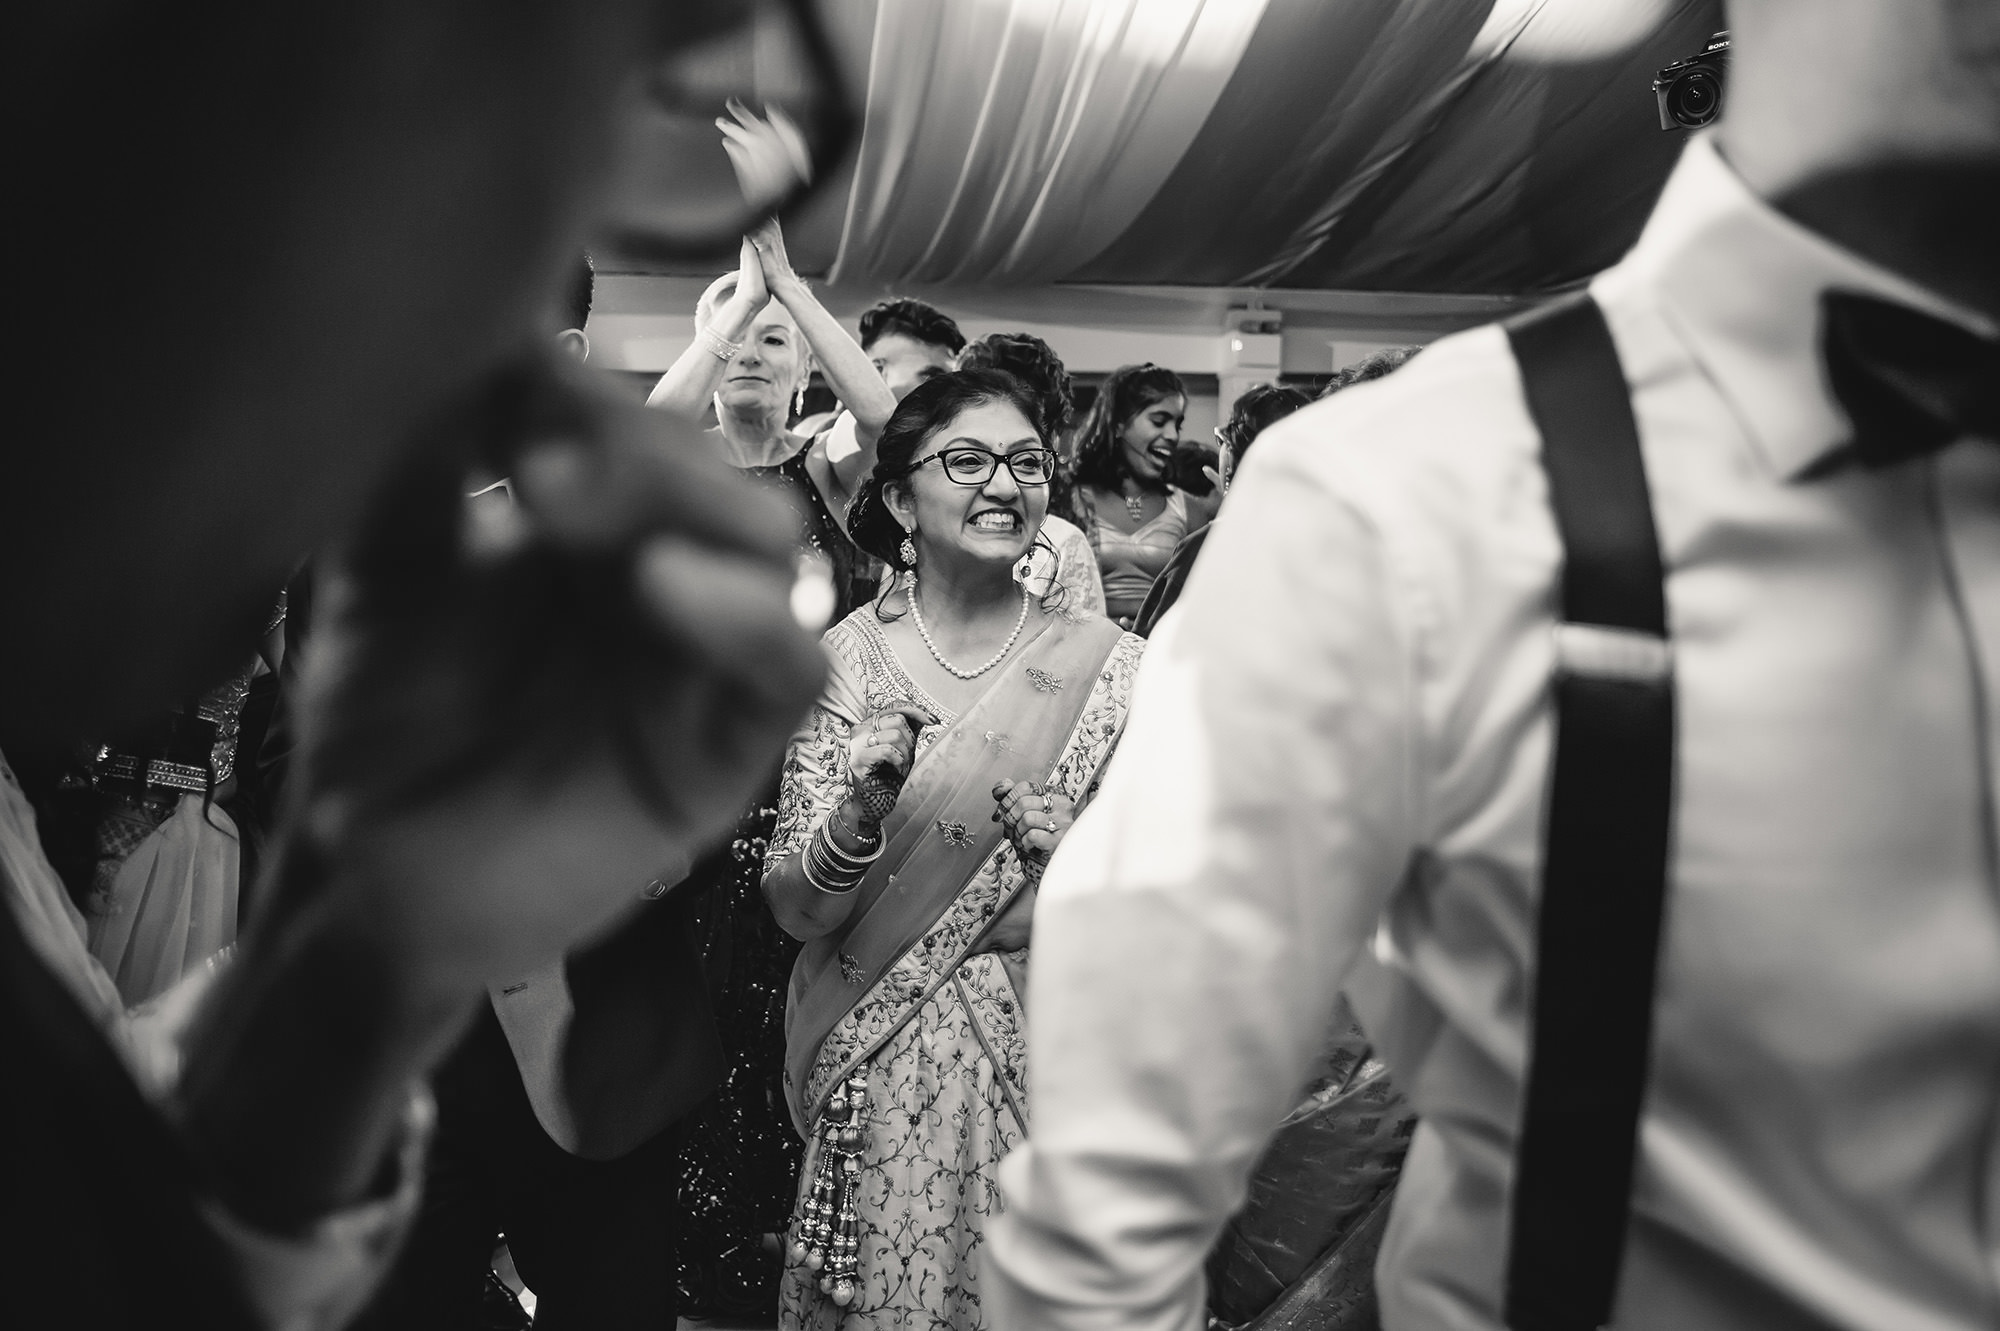 mother of groom at reception party